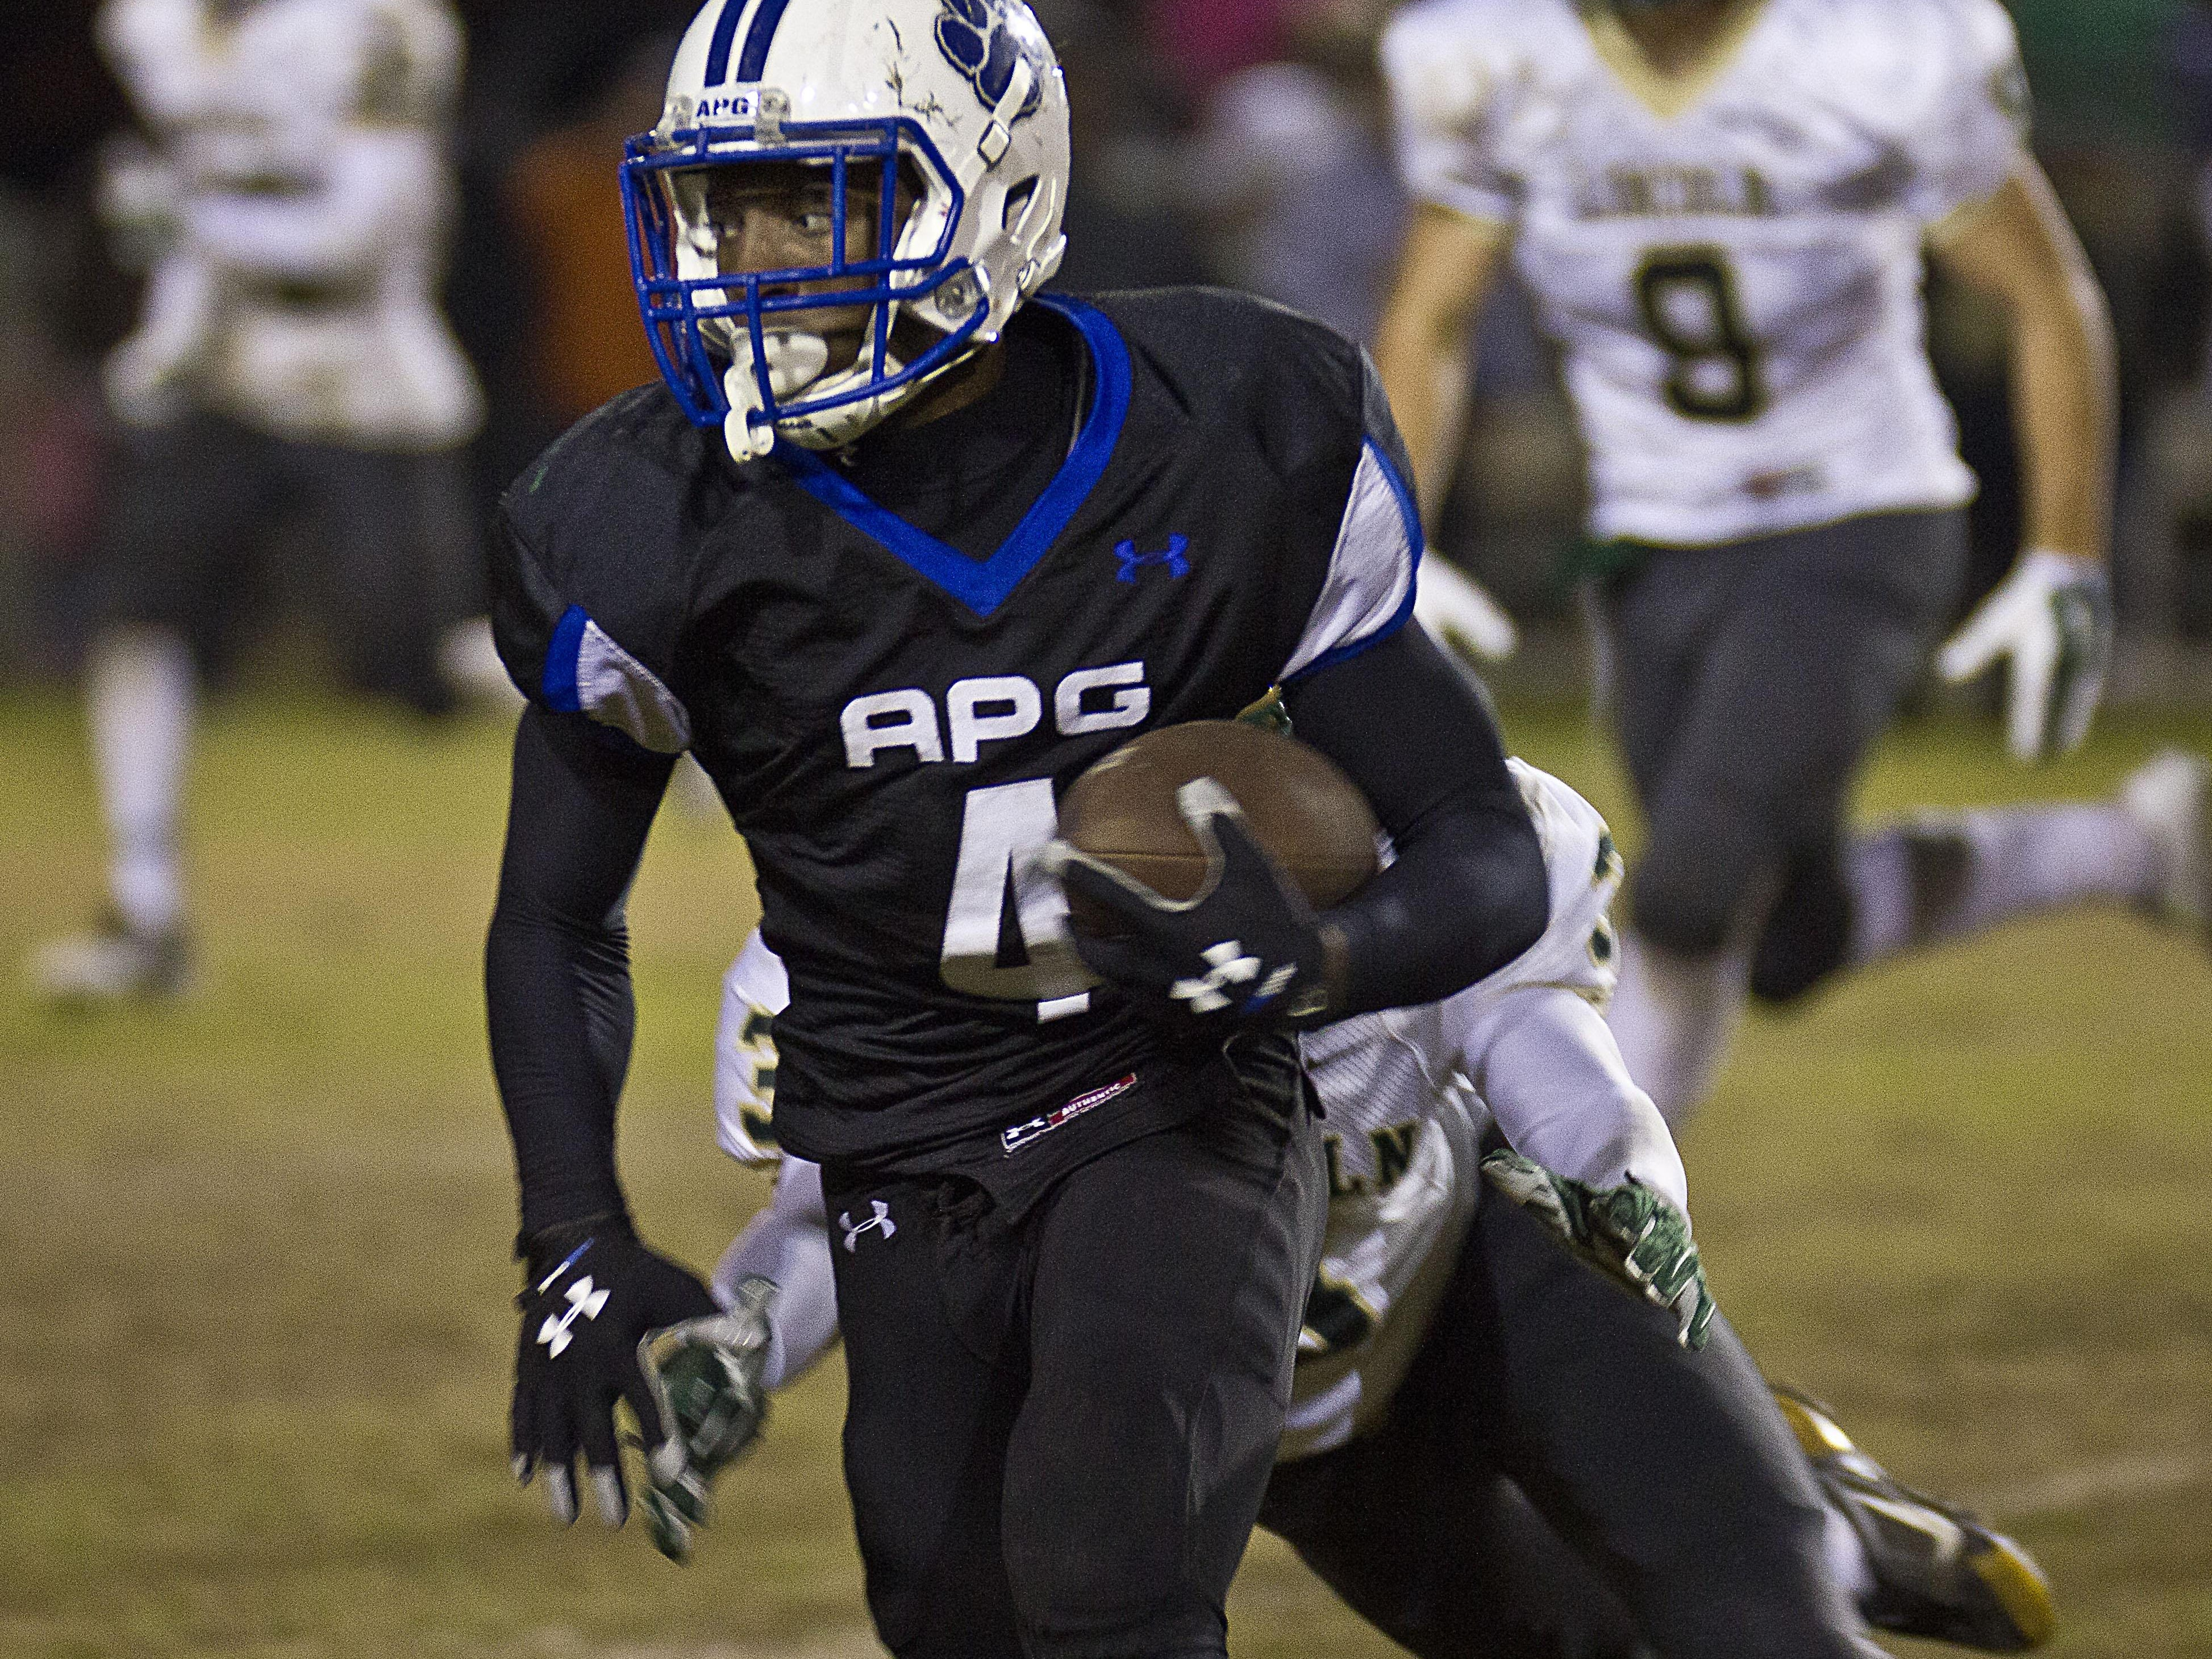 Godby Cougars running back P.J. Simmons rushes for a first down against Lincoln at Gene Cox Stadium during last year's 22-17 win. Simmons rushed for 96 yards and a touchdown in the defensive game.